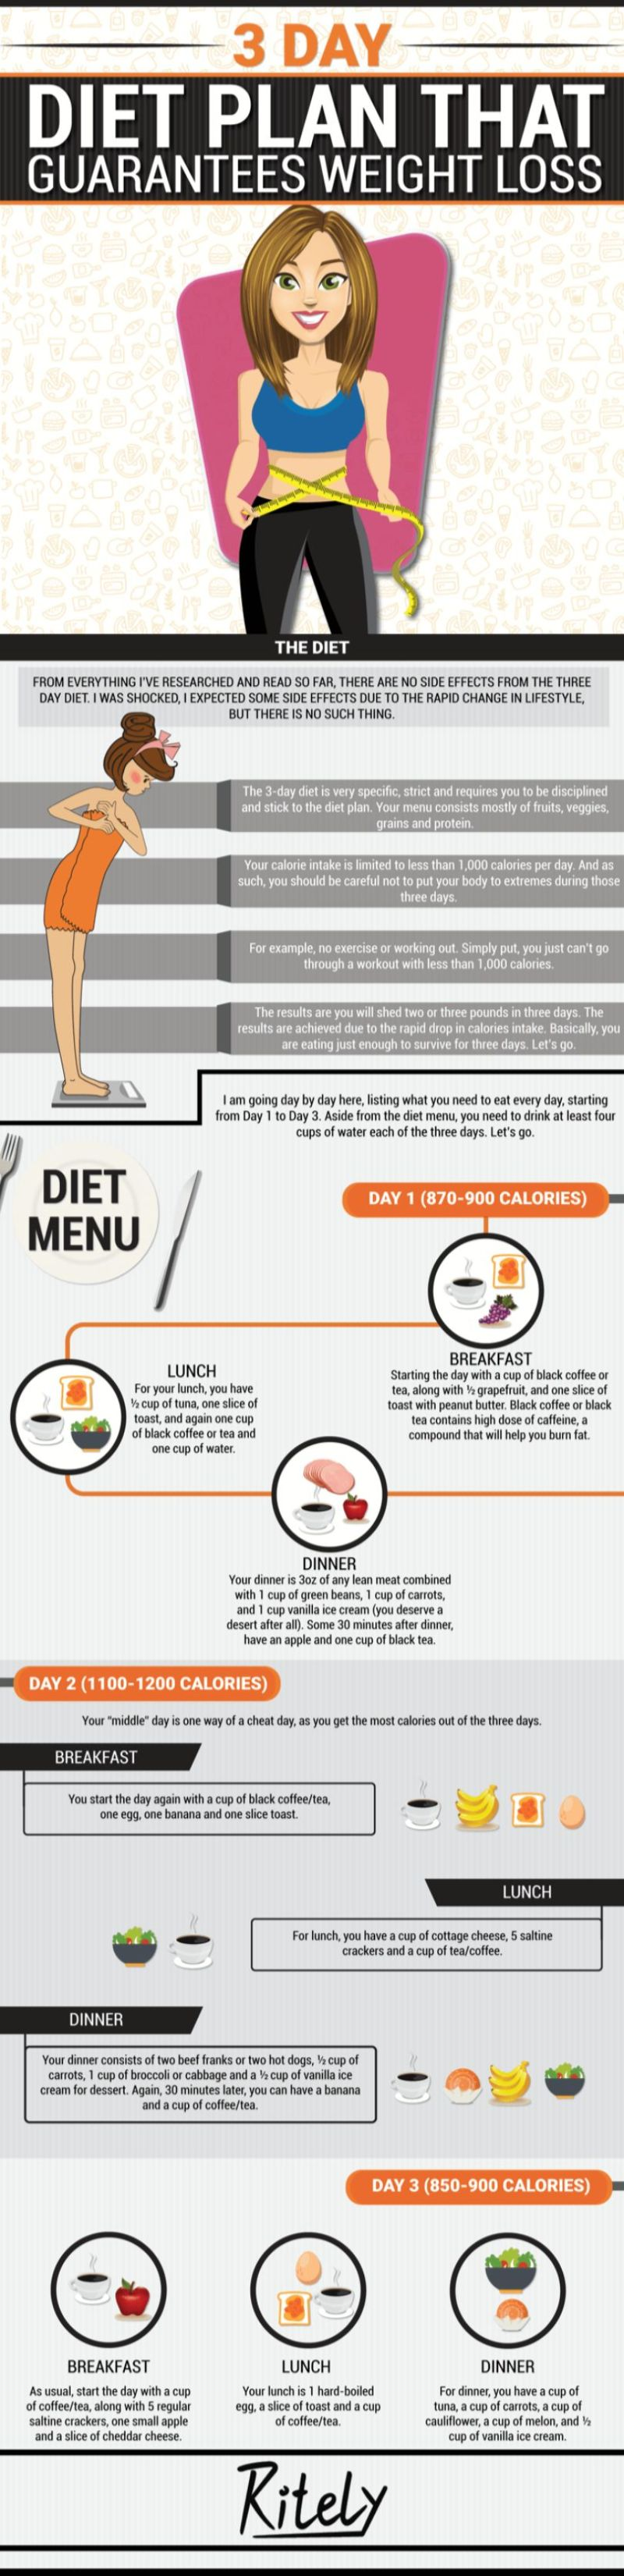 3-Day Diet Plan That Guarantees Weight Loss